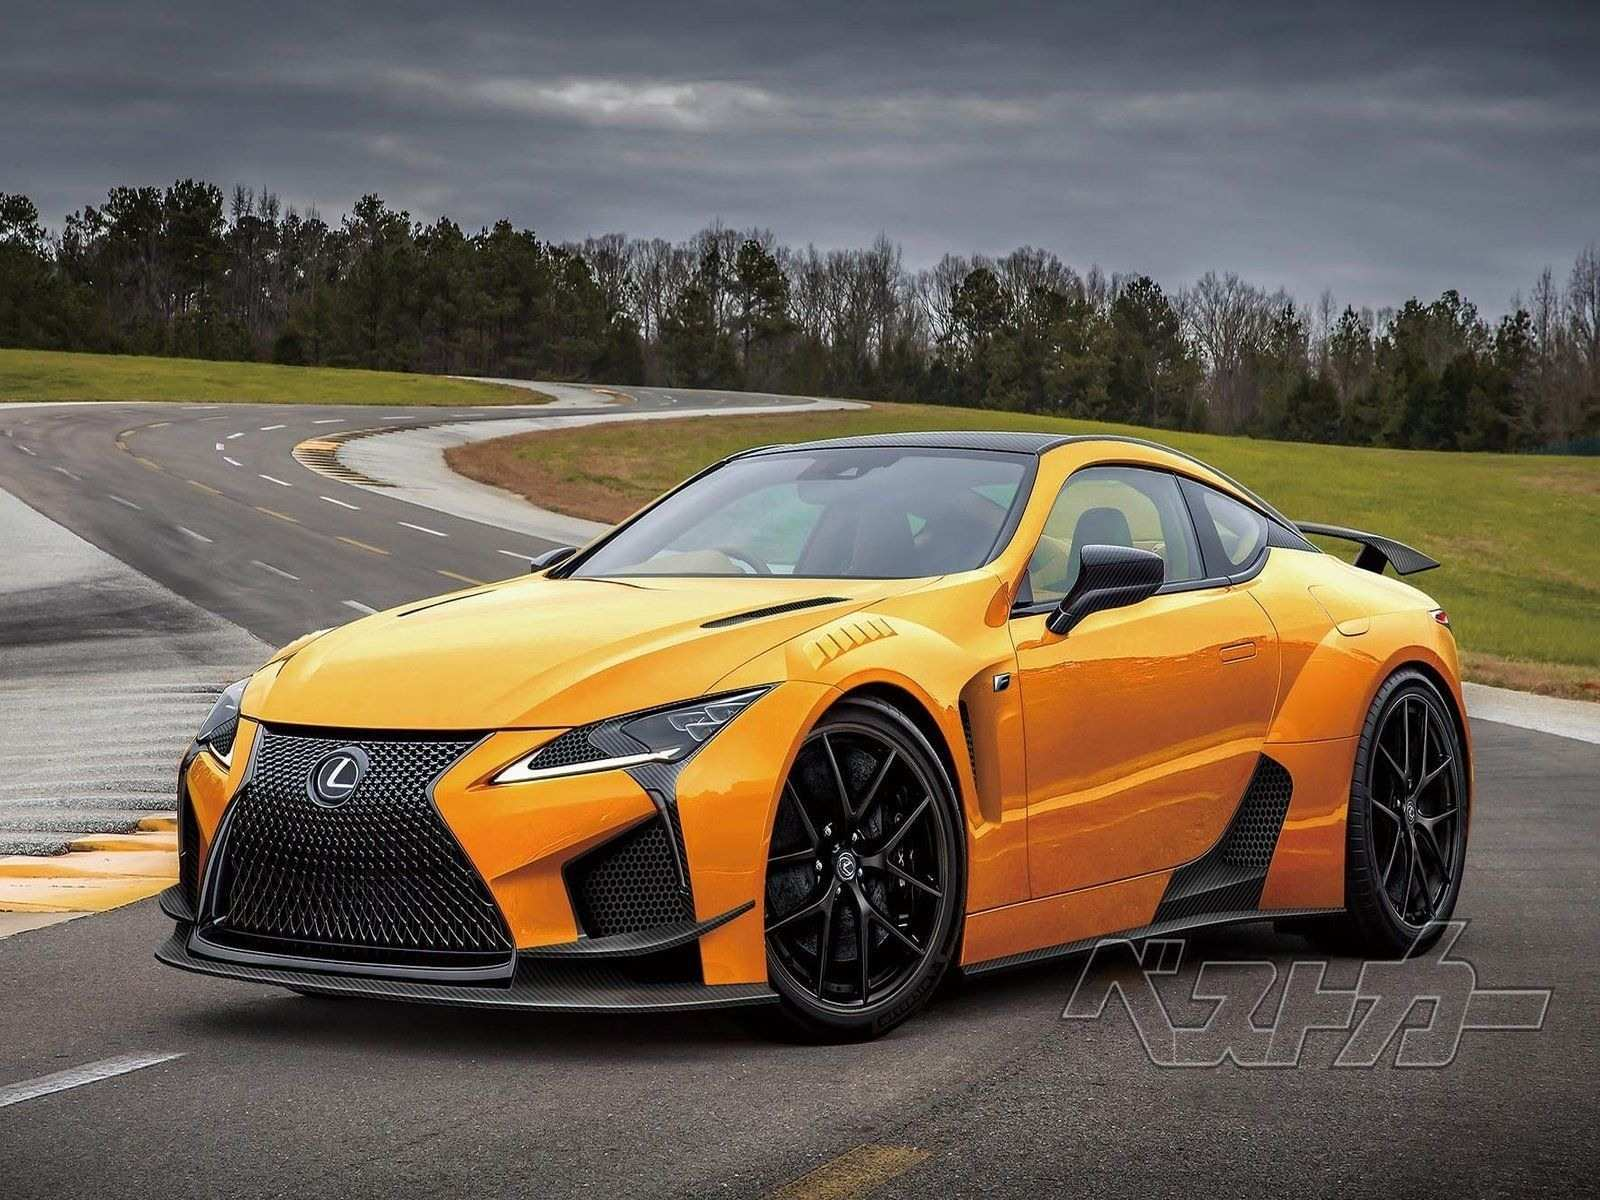 37 New Lexus Lf Lc Release Date Wallpaper for Lexus Lf Lc Release Date